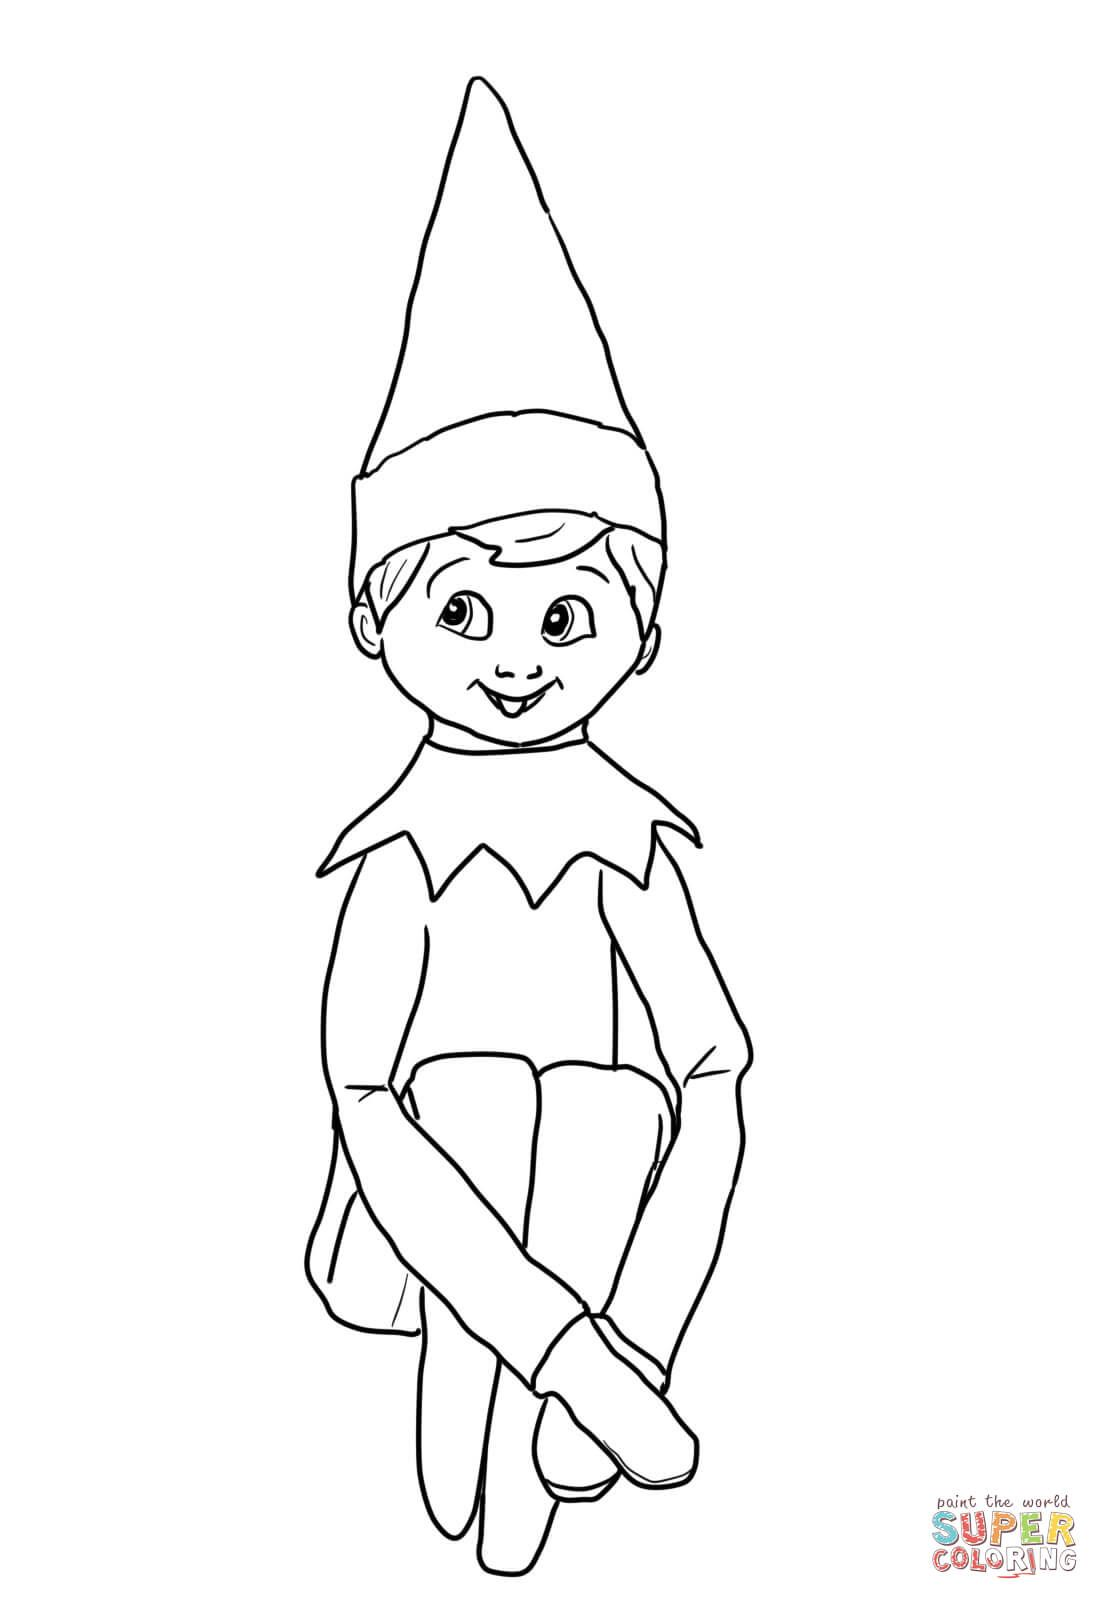 Christmas Elf On Shelf Coloring Page Free Printable Coloring Pages Christmas Coloring Sheets Santa Coloring Pages Printable Christmas Coloring Pages